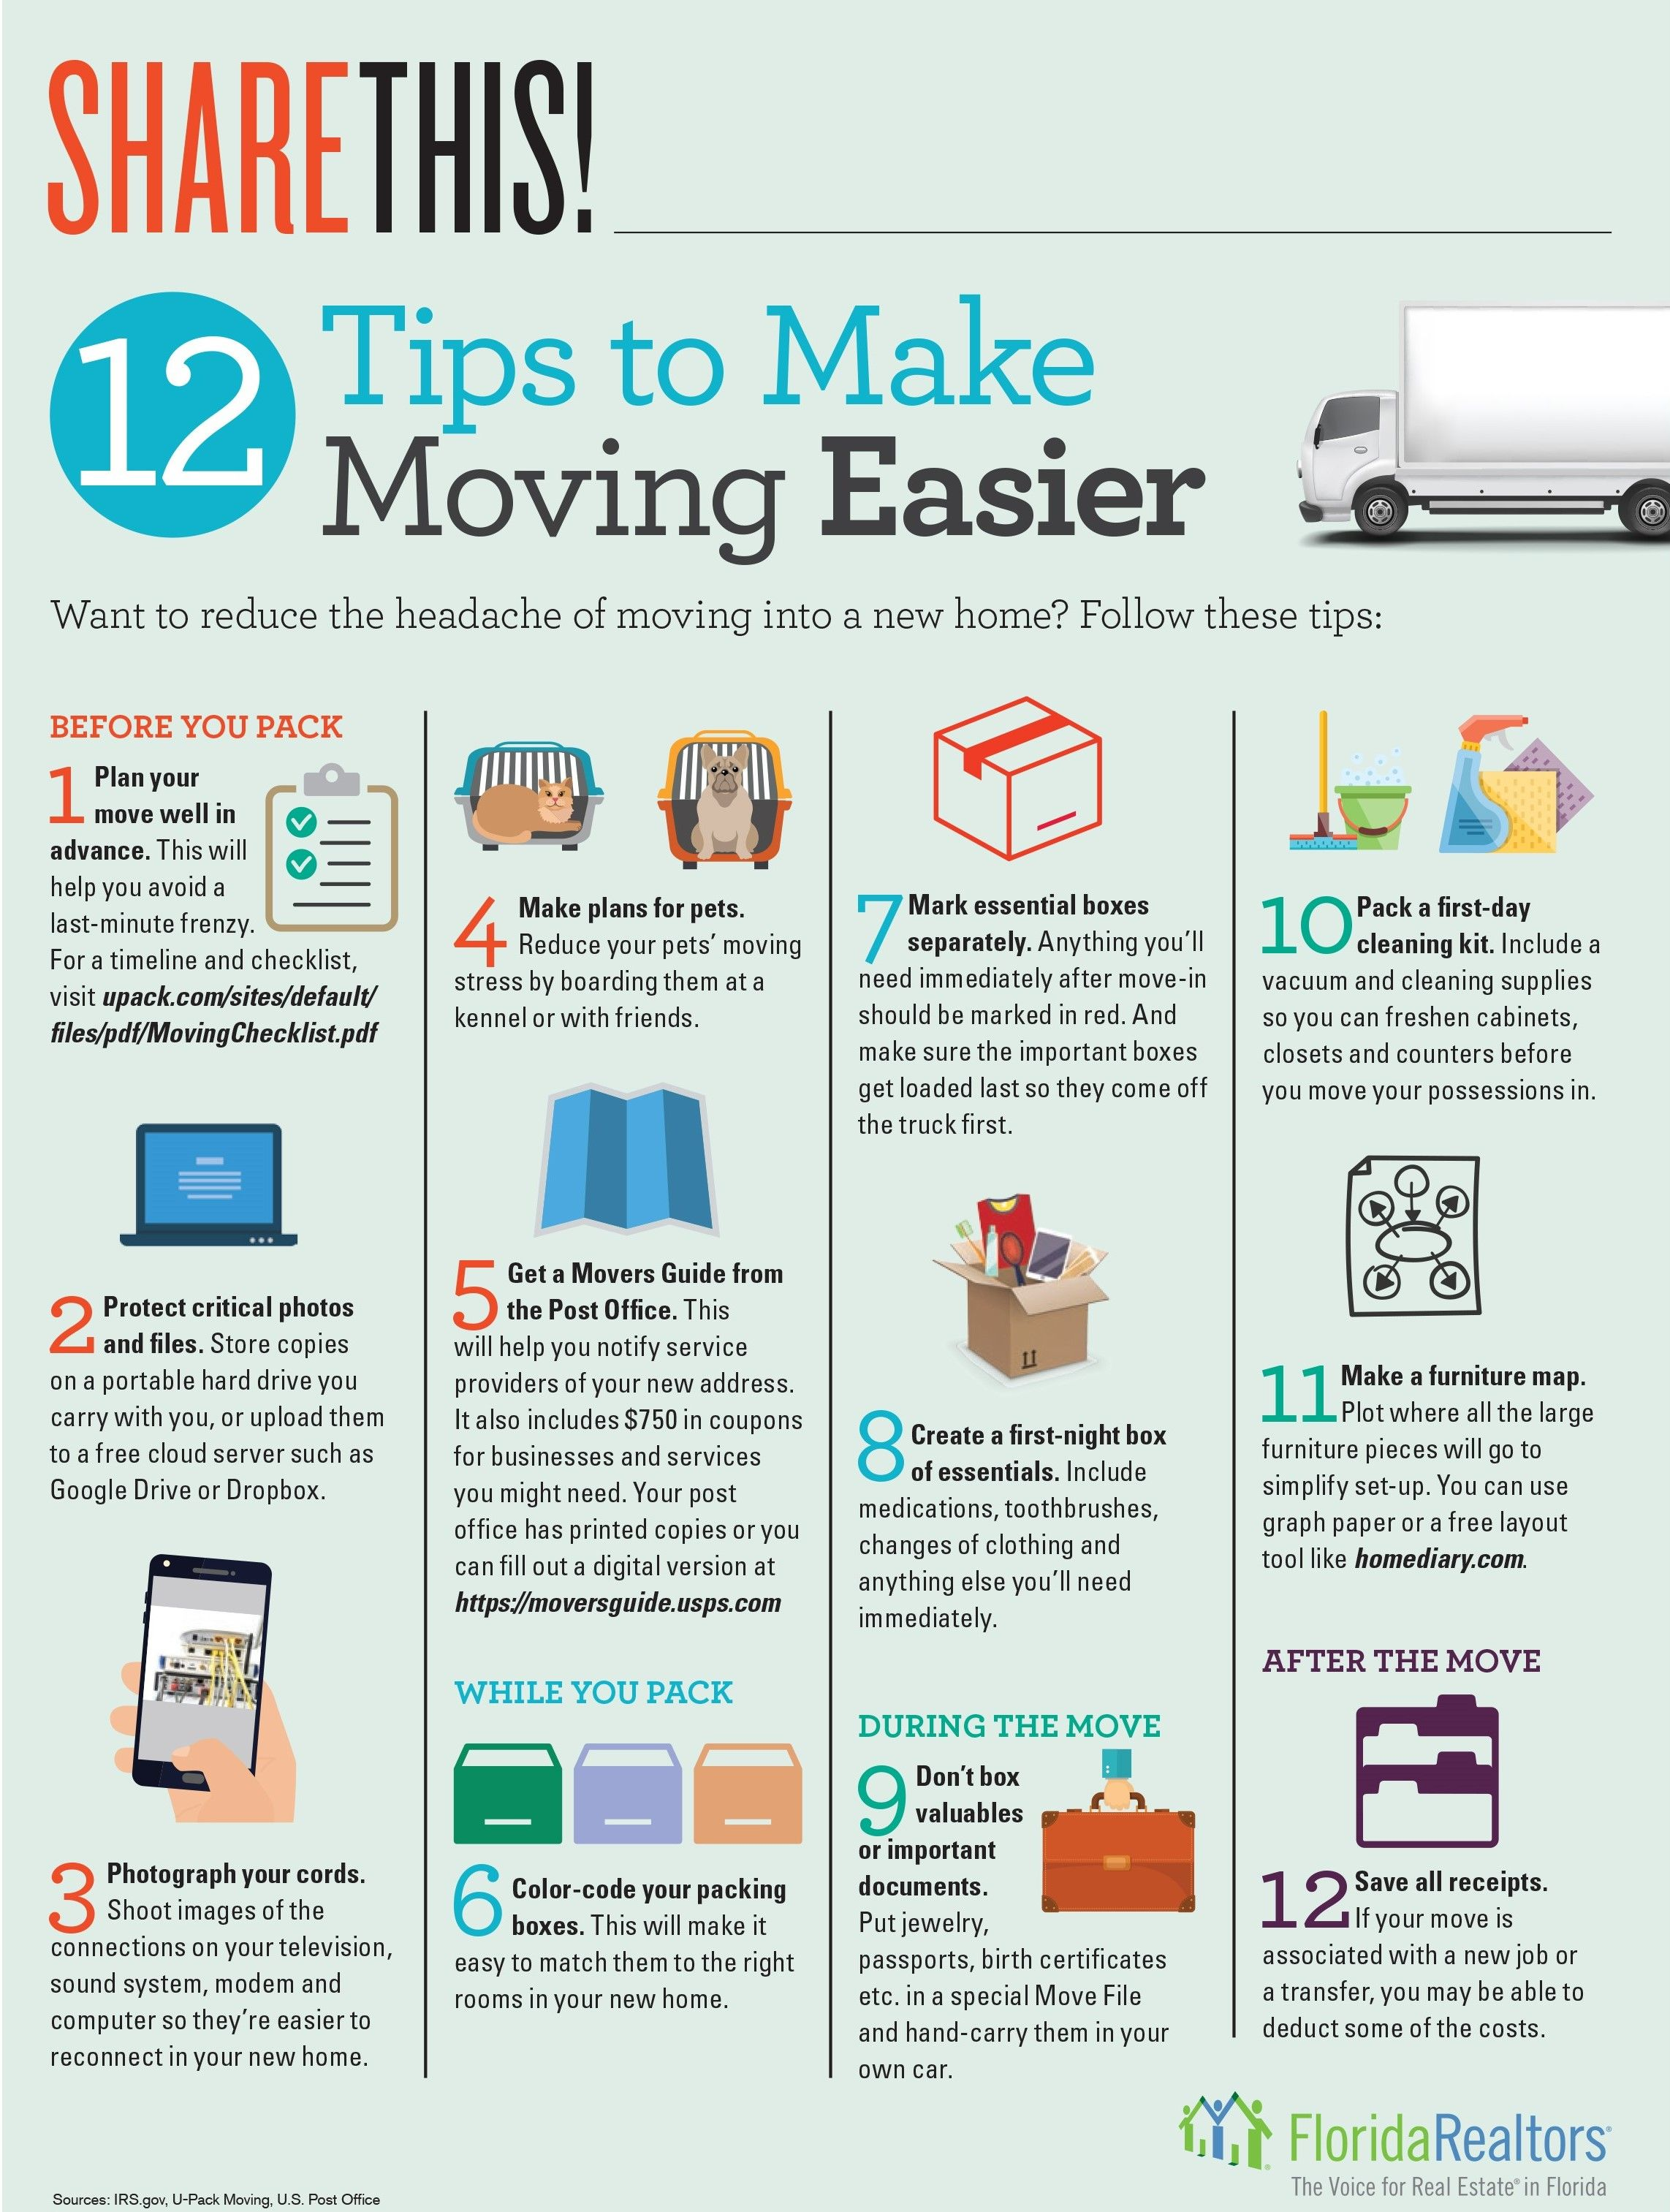 VLE Realty, LLC | Real Estate E-News | Moving tips, Luxury real